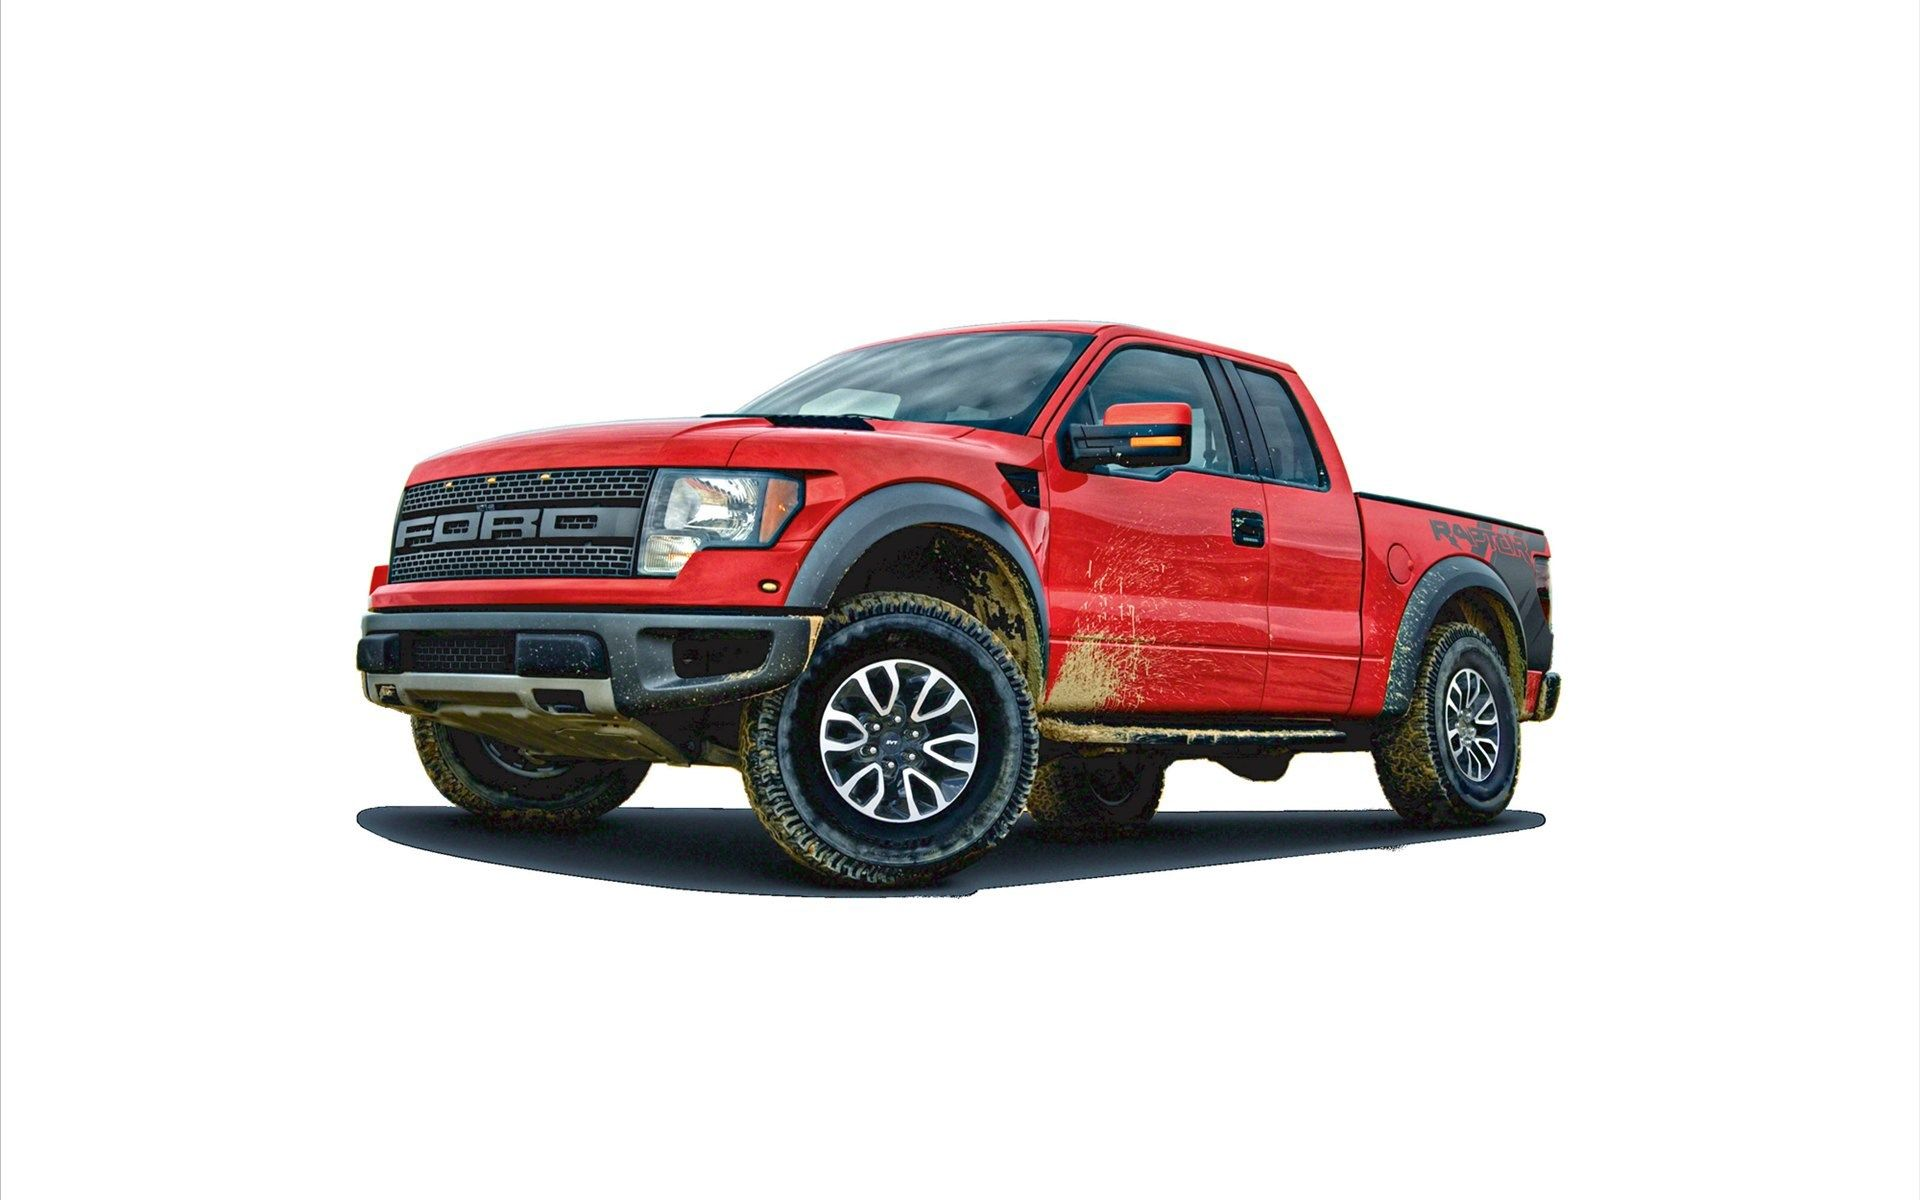 ford raptor Background hd (With images) Ford raptor